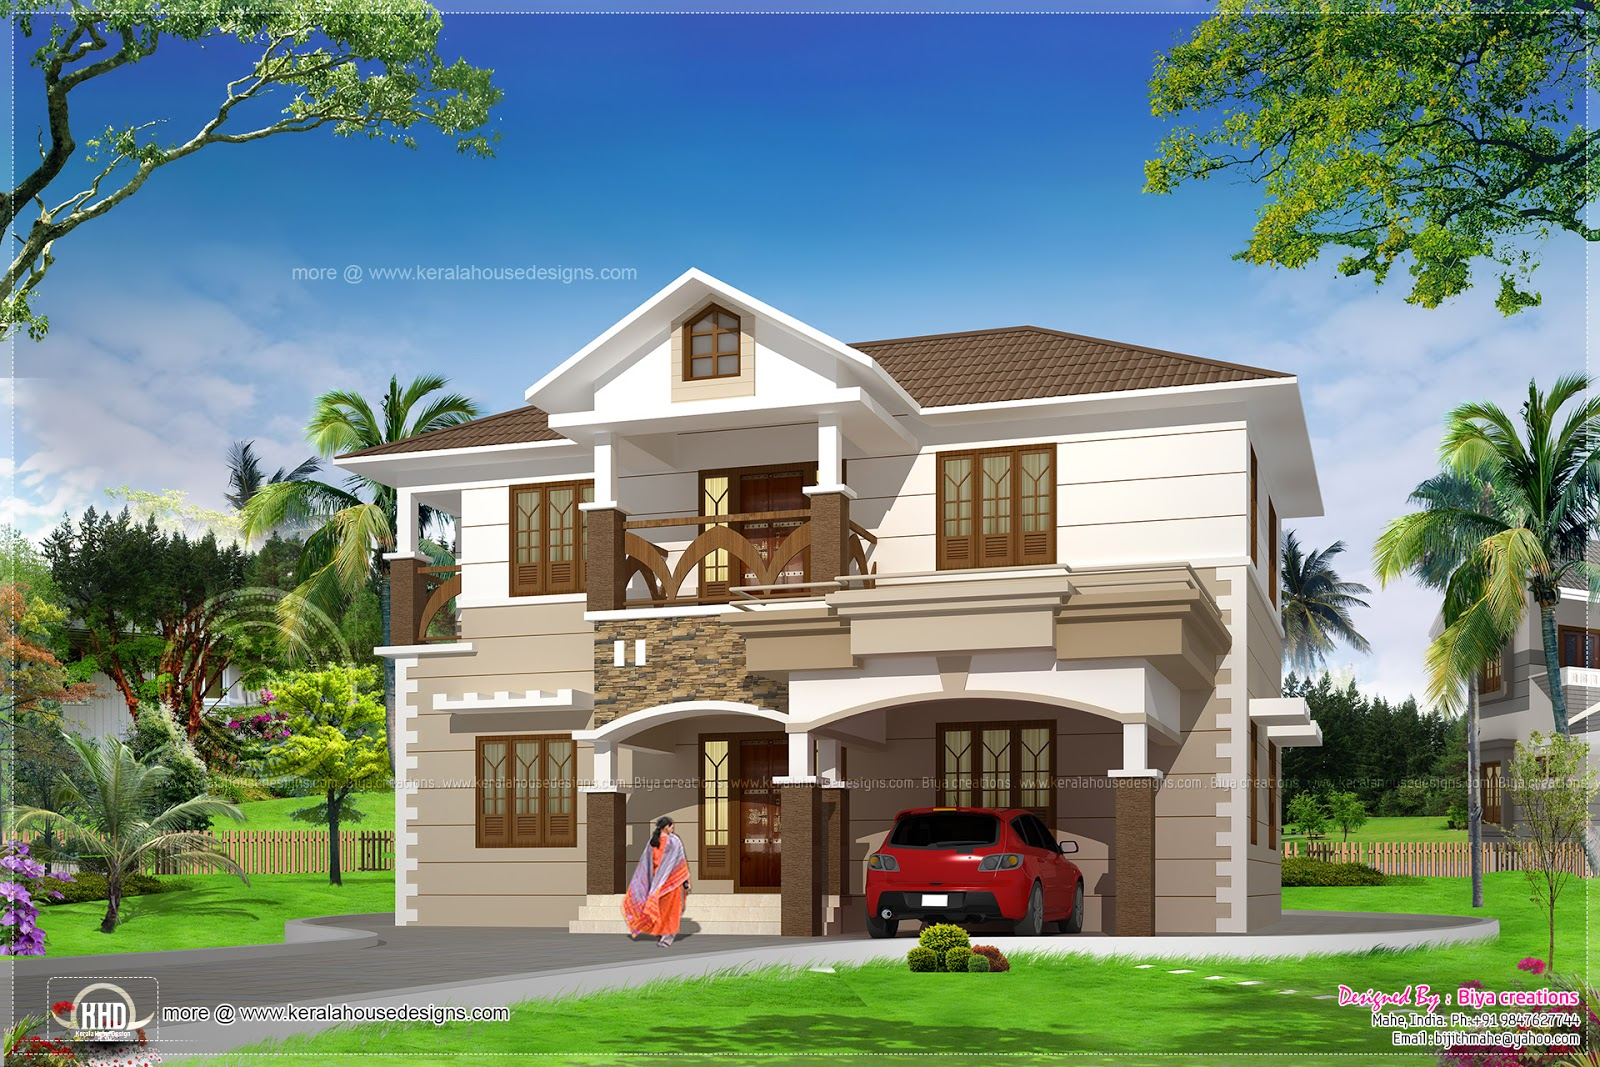 4 Bedroom Villa In 2250 Square Feet Kerala Home Design And Floor Plans